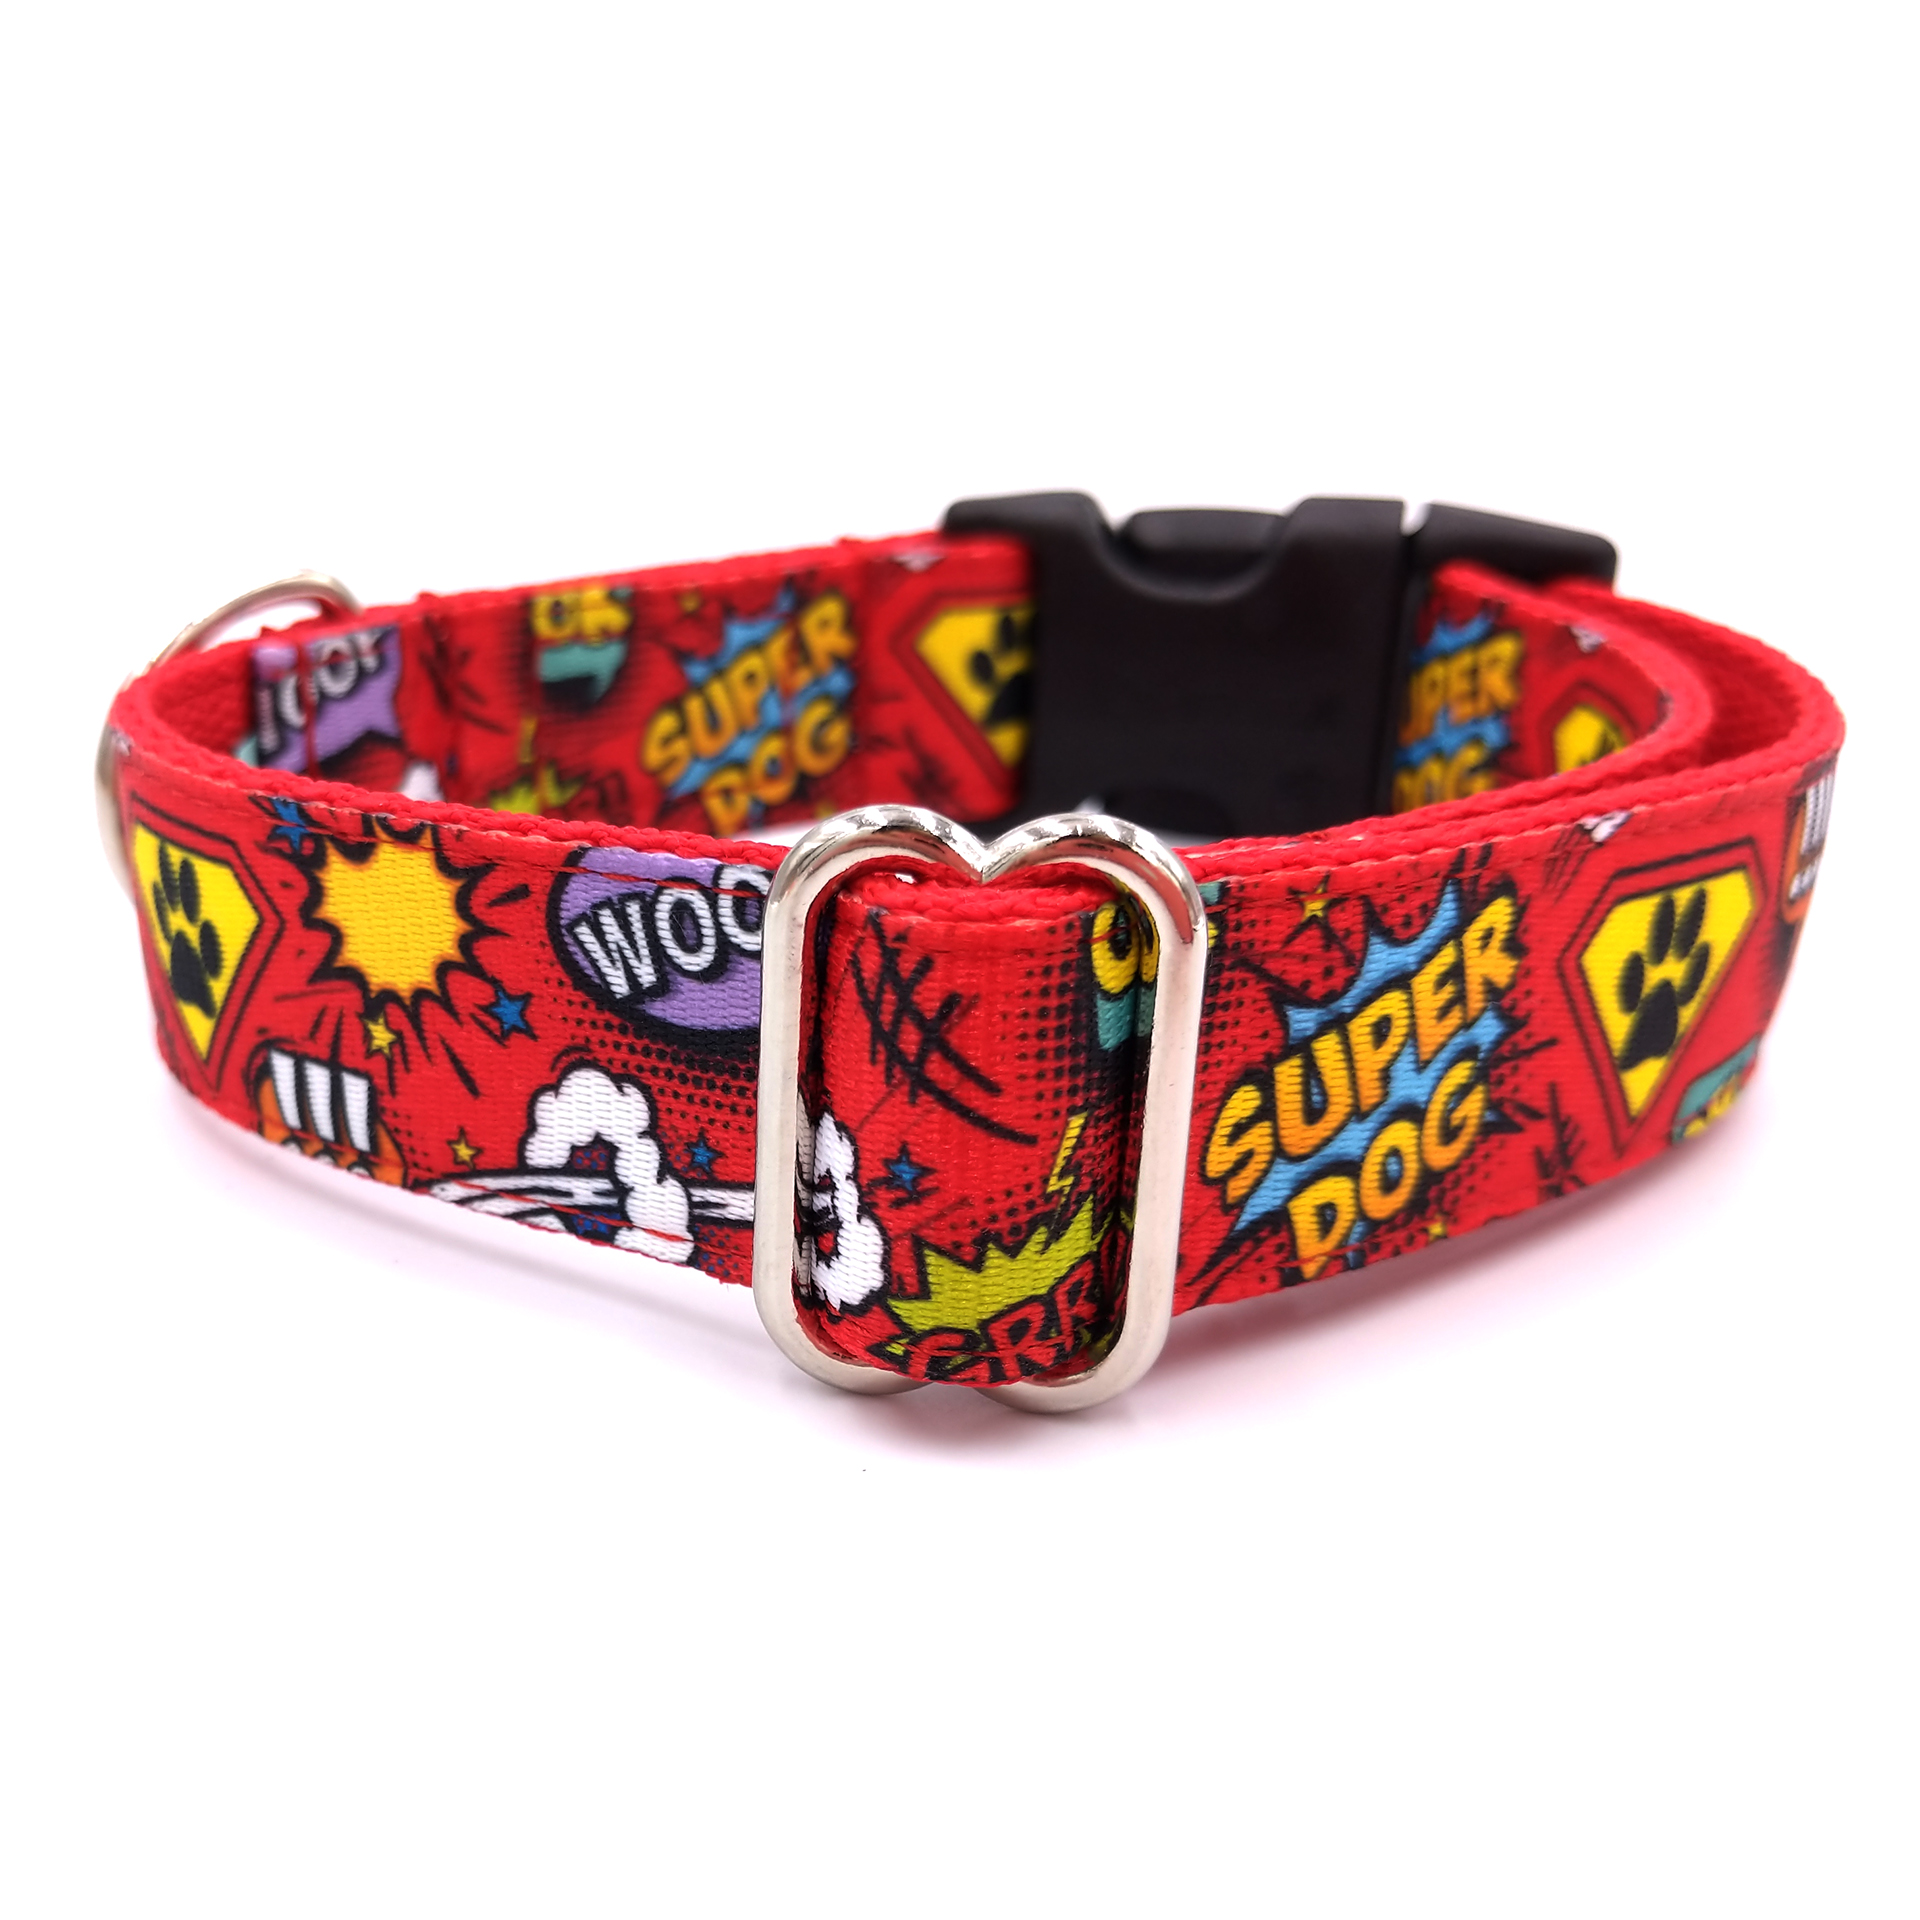 Superdog red dog collar